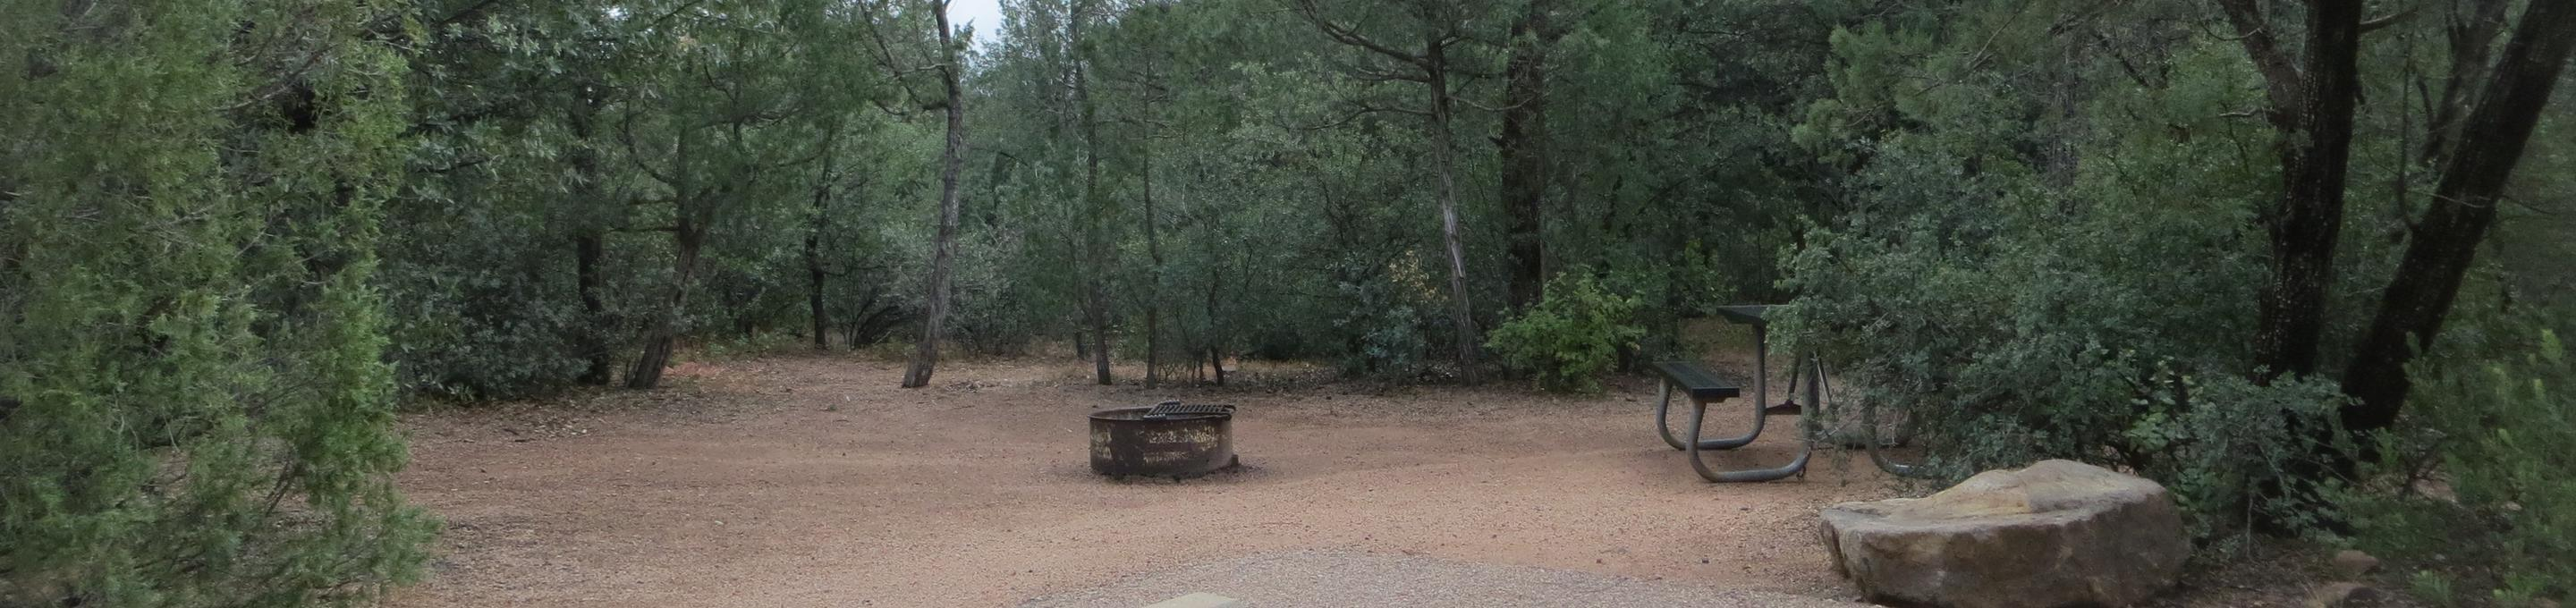 Houston Mesa, Mountain Lion Loop site #14 featuring large camping space with picnic table and fire pit.